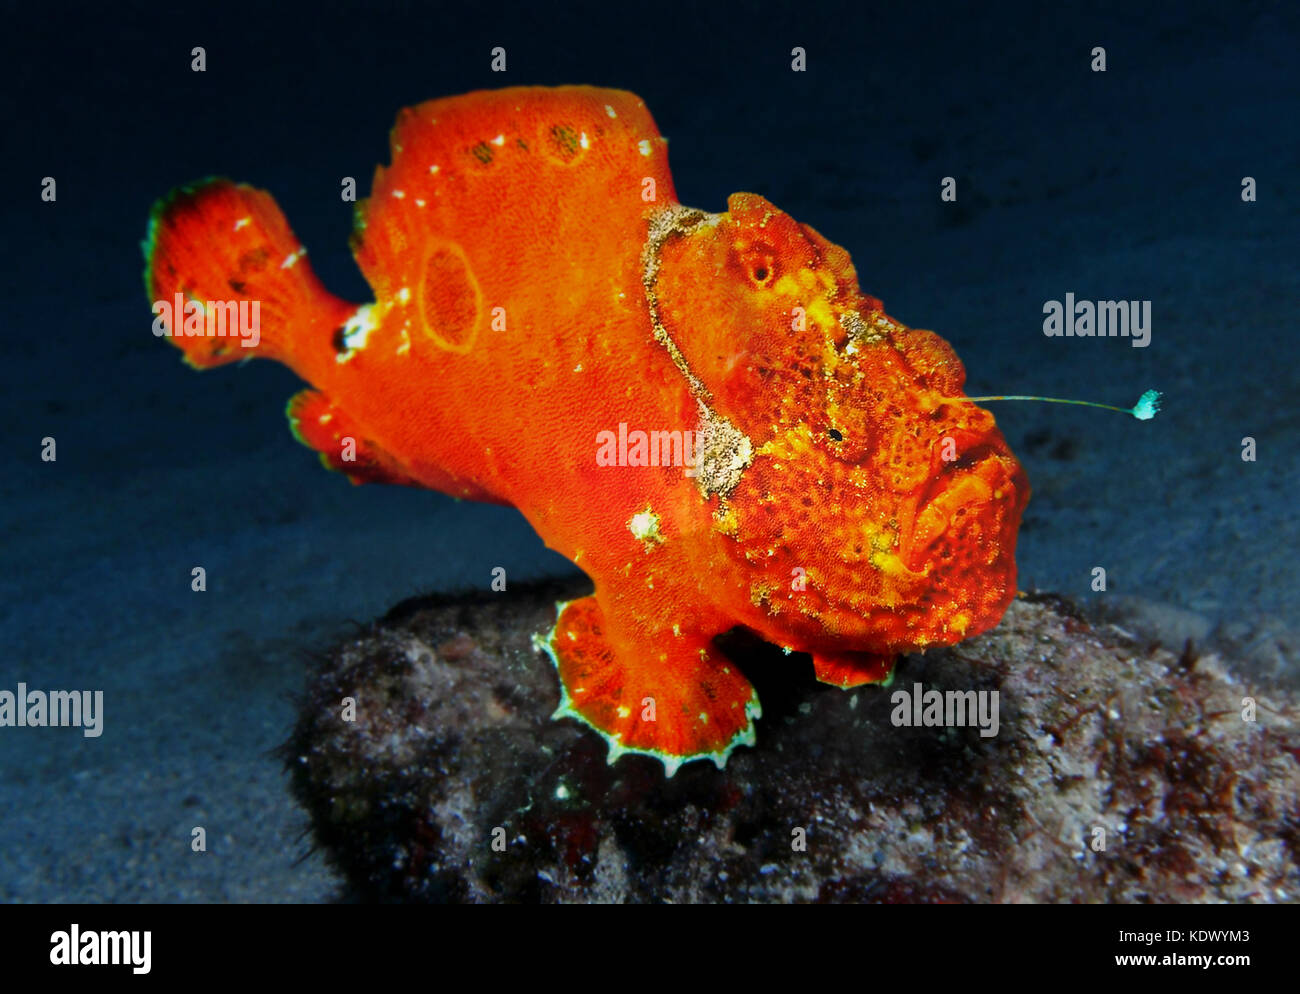 Longlure frogfish, Antennarius multiocellatus.  Colour highly variable. It's a bottom dweller, it mimics surrounding - Stock Image